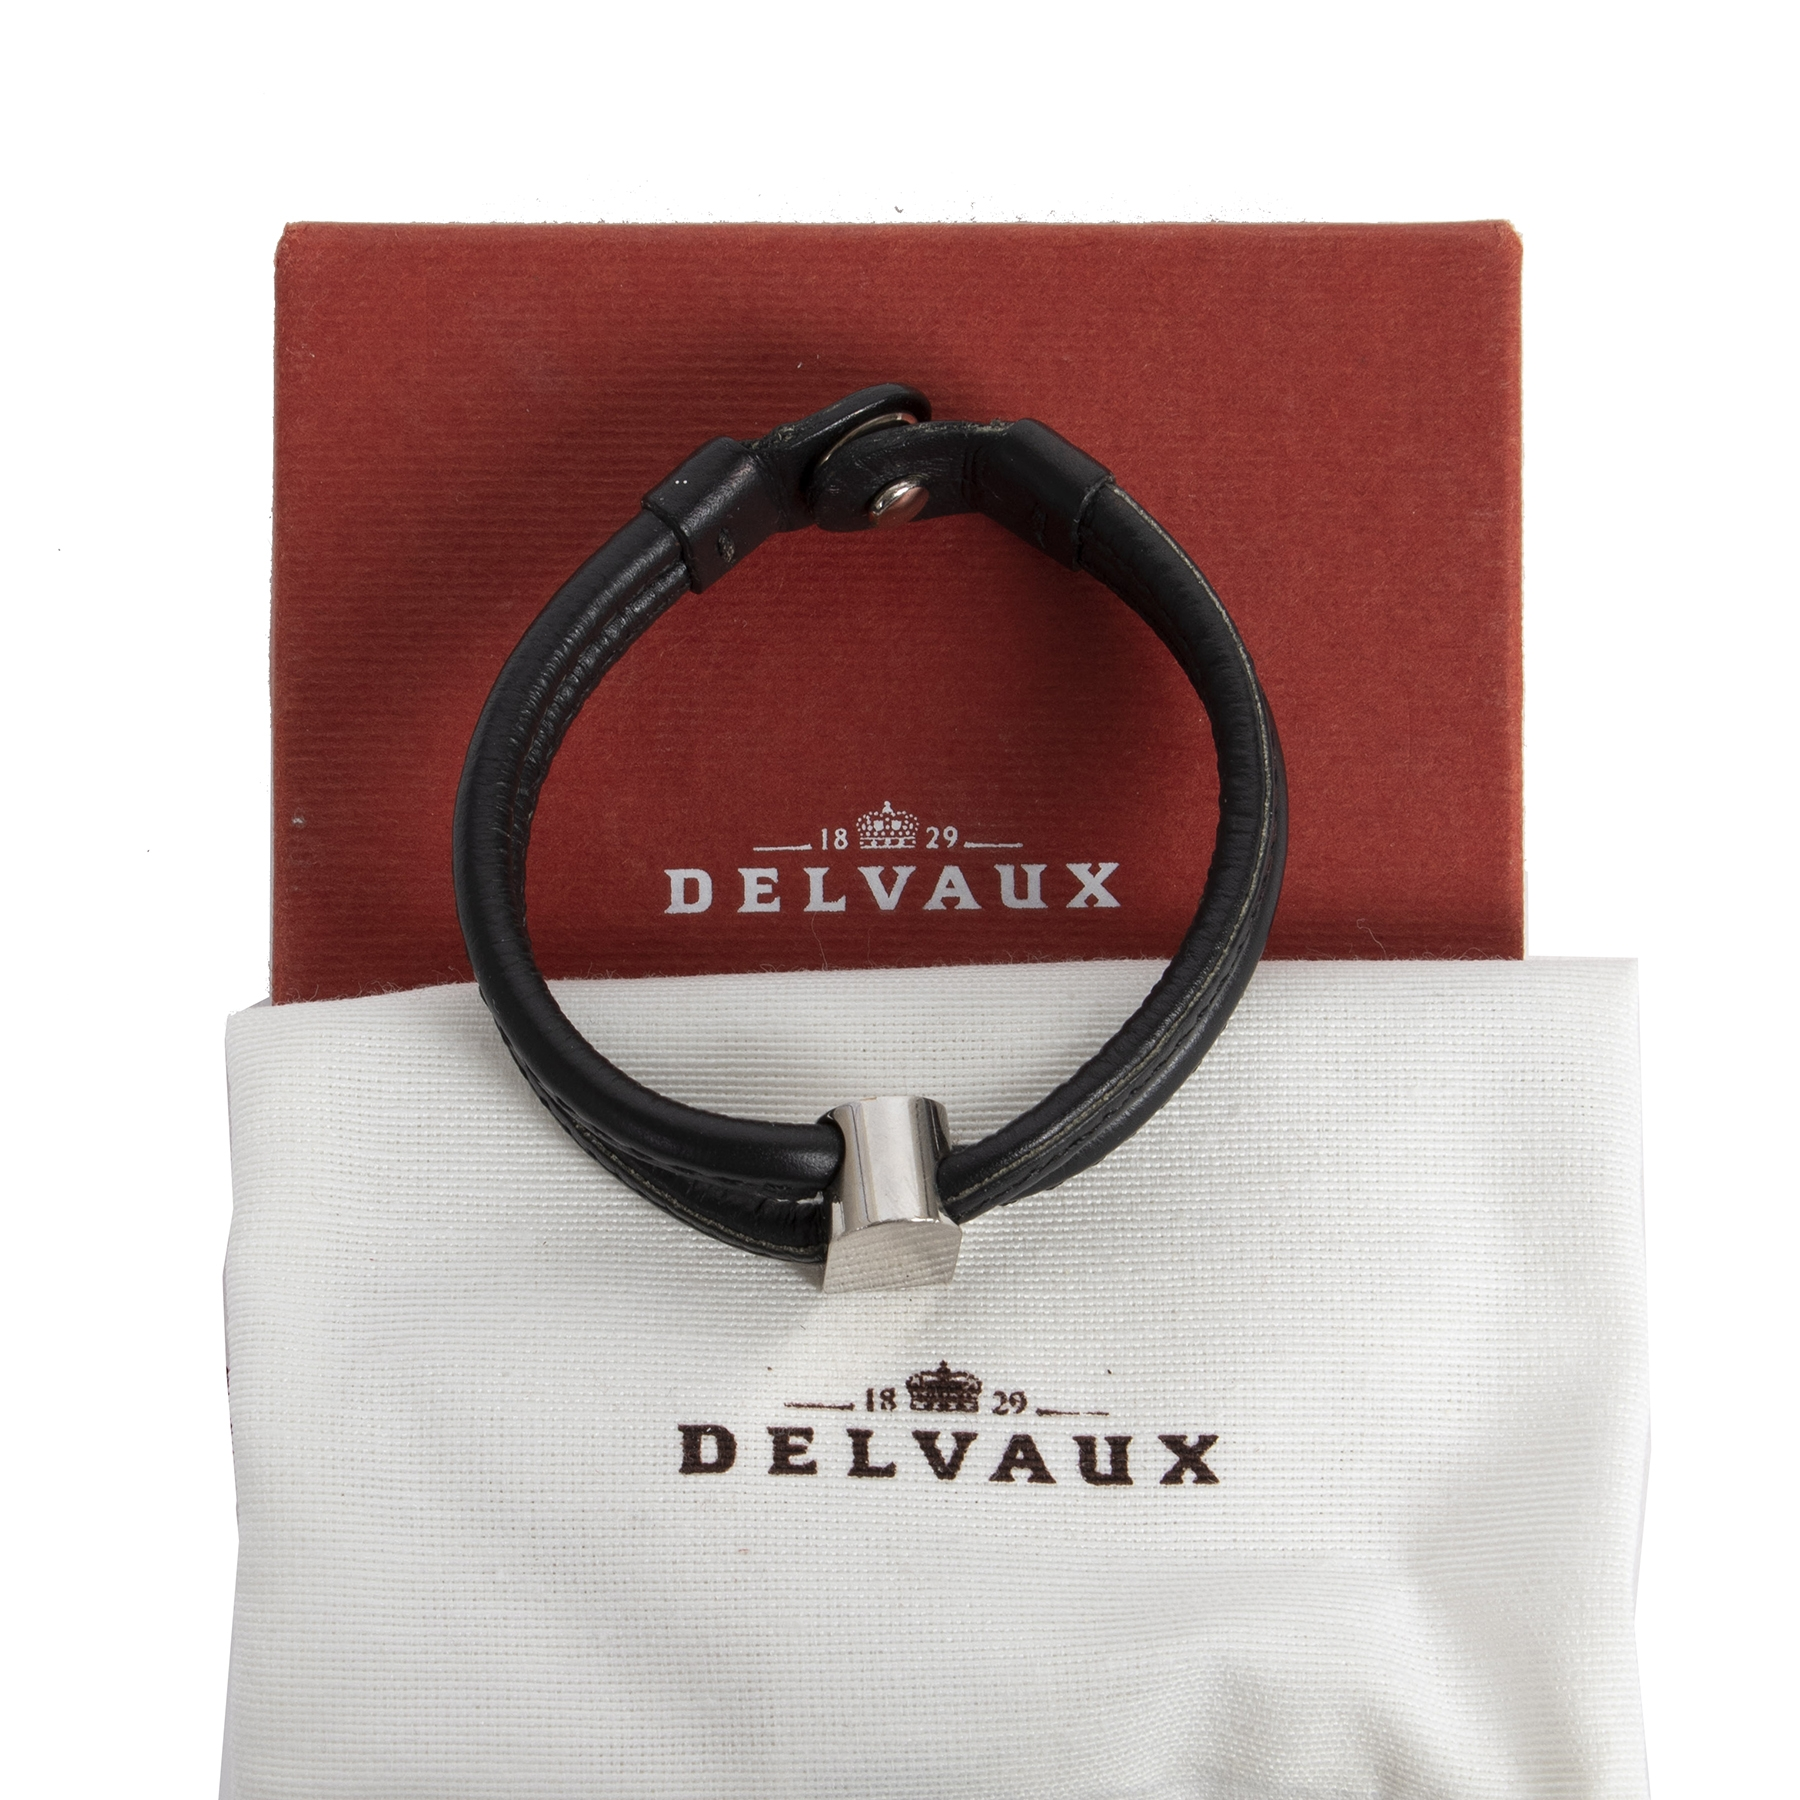 Authentic secondhand Delvaux Black Leather Bracelet Silver D designer accessories designer brands fashion luxury vintage webshop safe secure online shopping